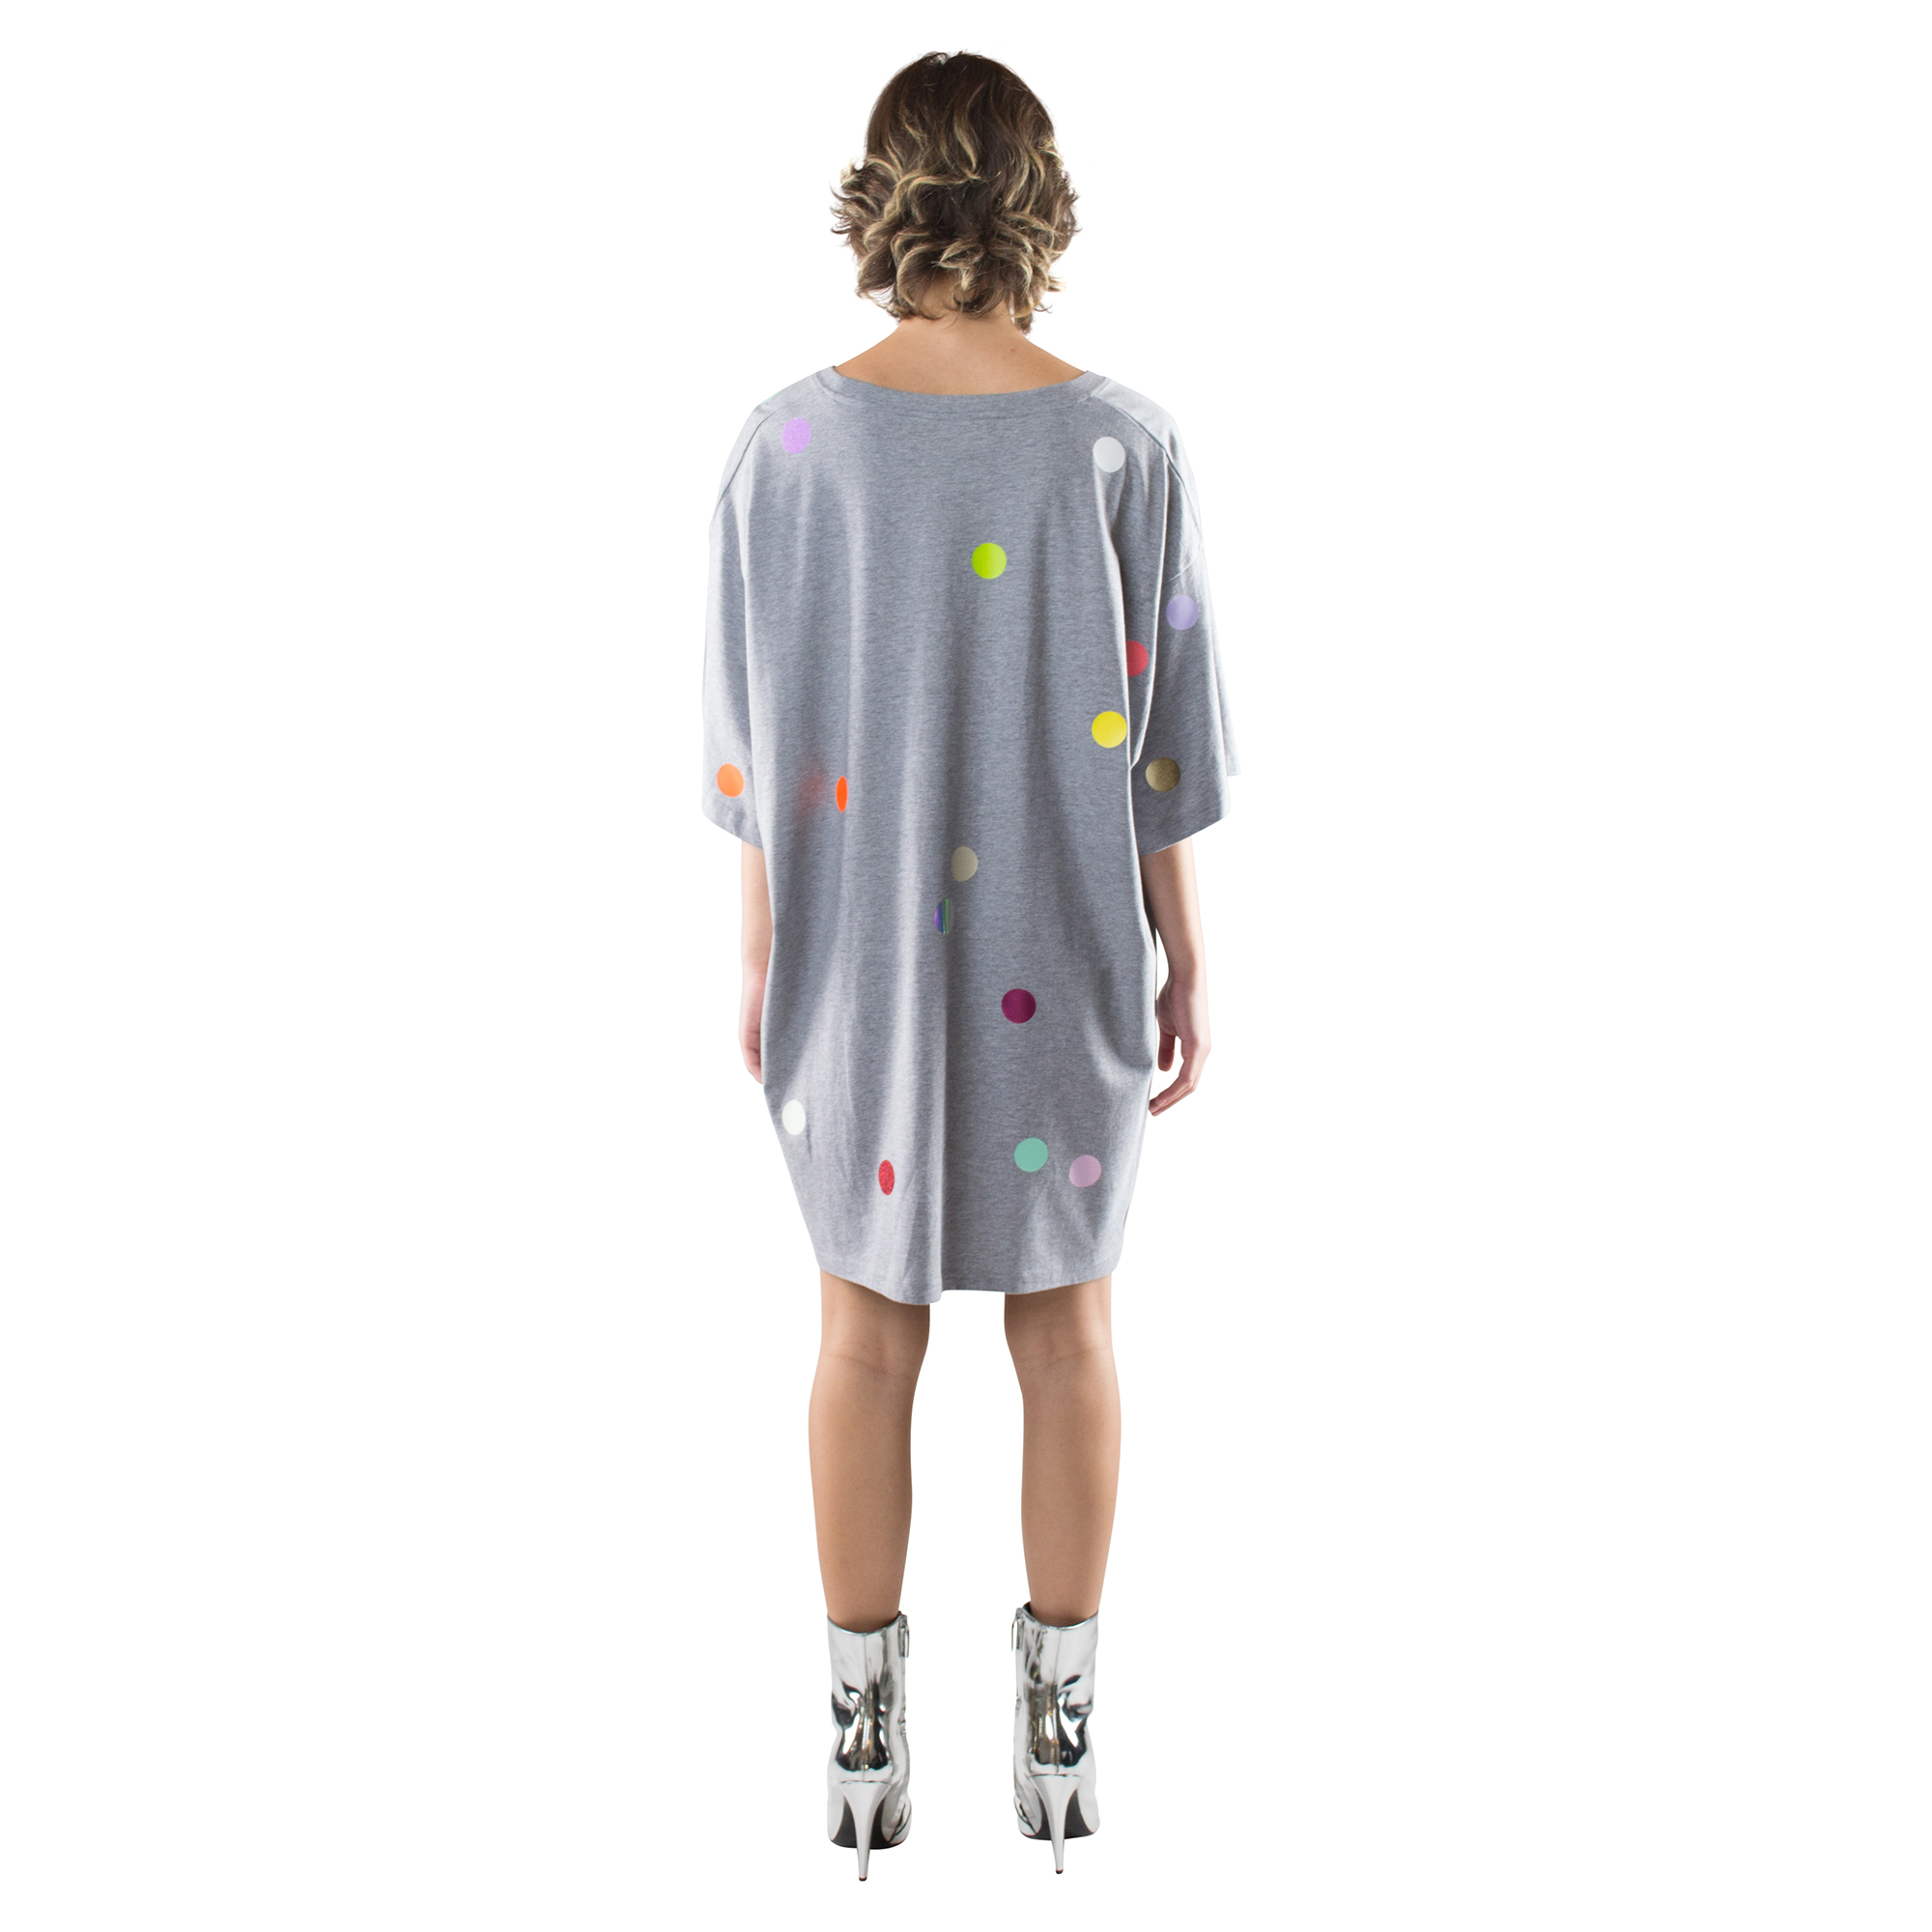 starstyling zoeppritz points bigshirt, Farbe grau, Material Baumwolle in Groesse 4XL